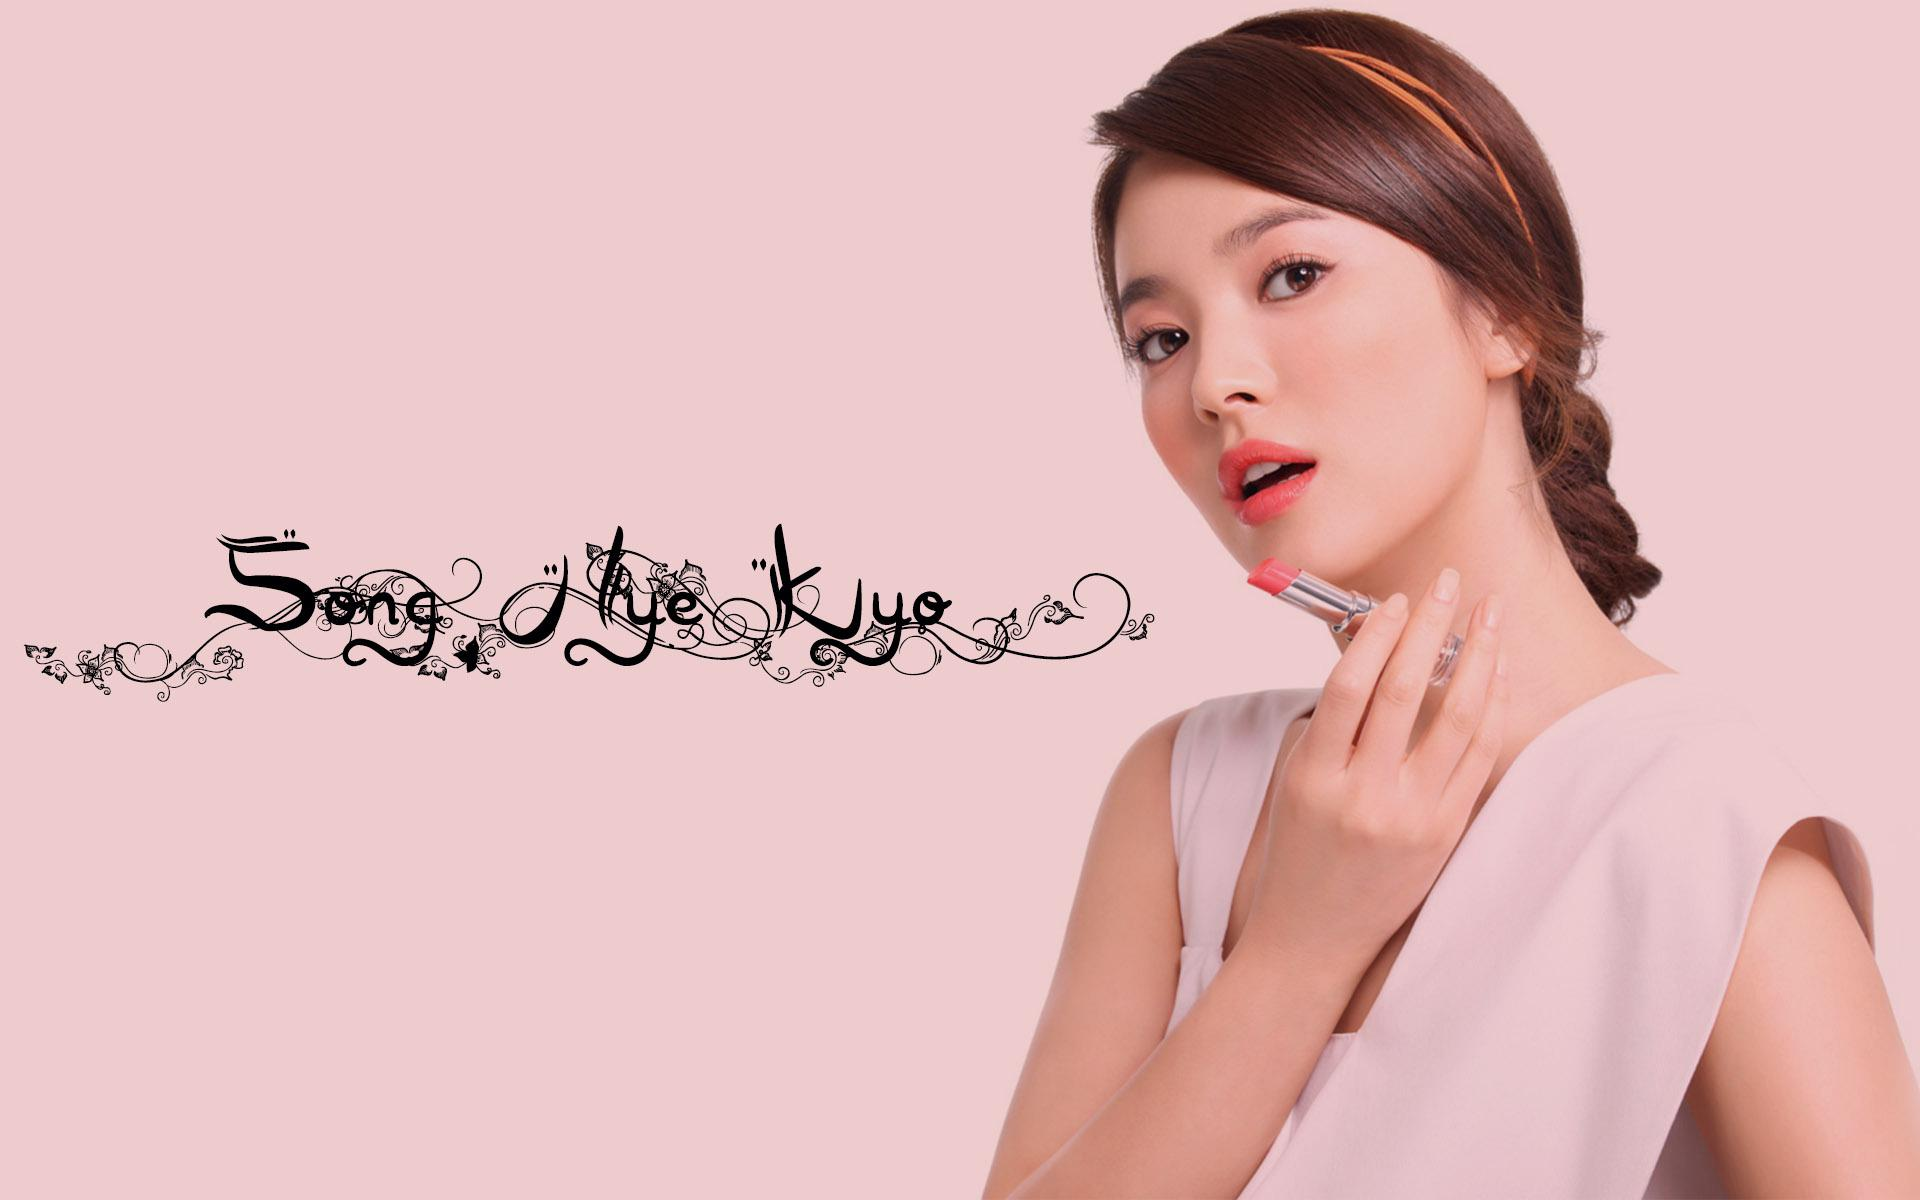 1920x1200 - Song Hye-Kyo Wallpapers 5